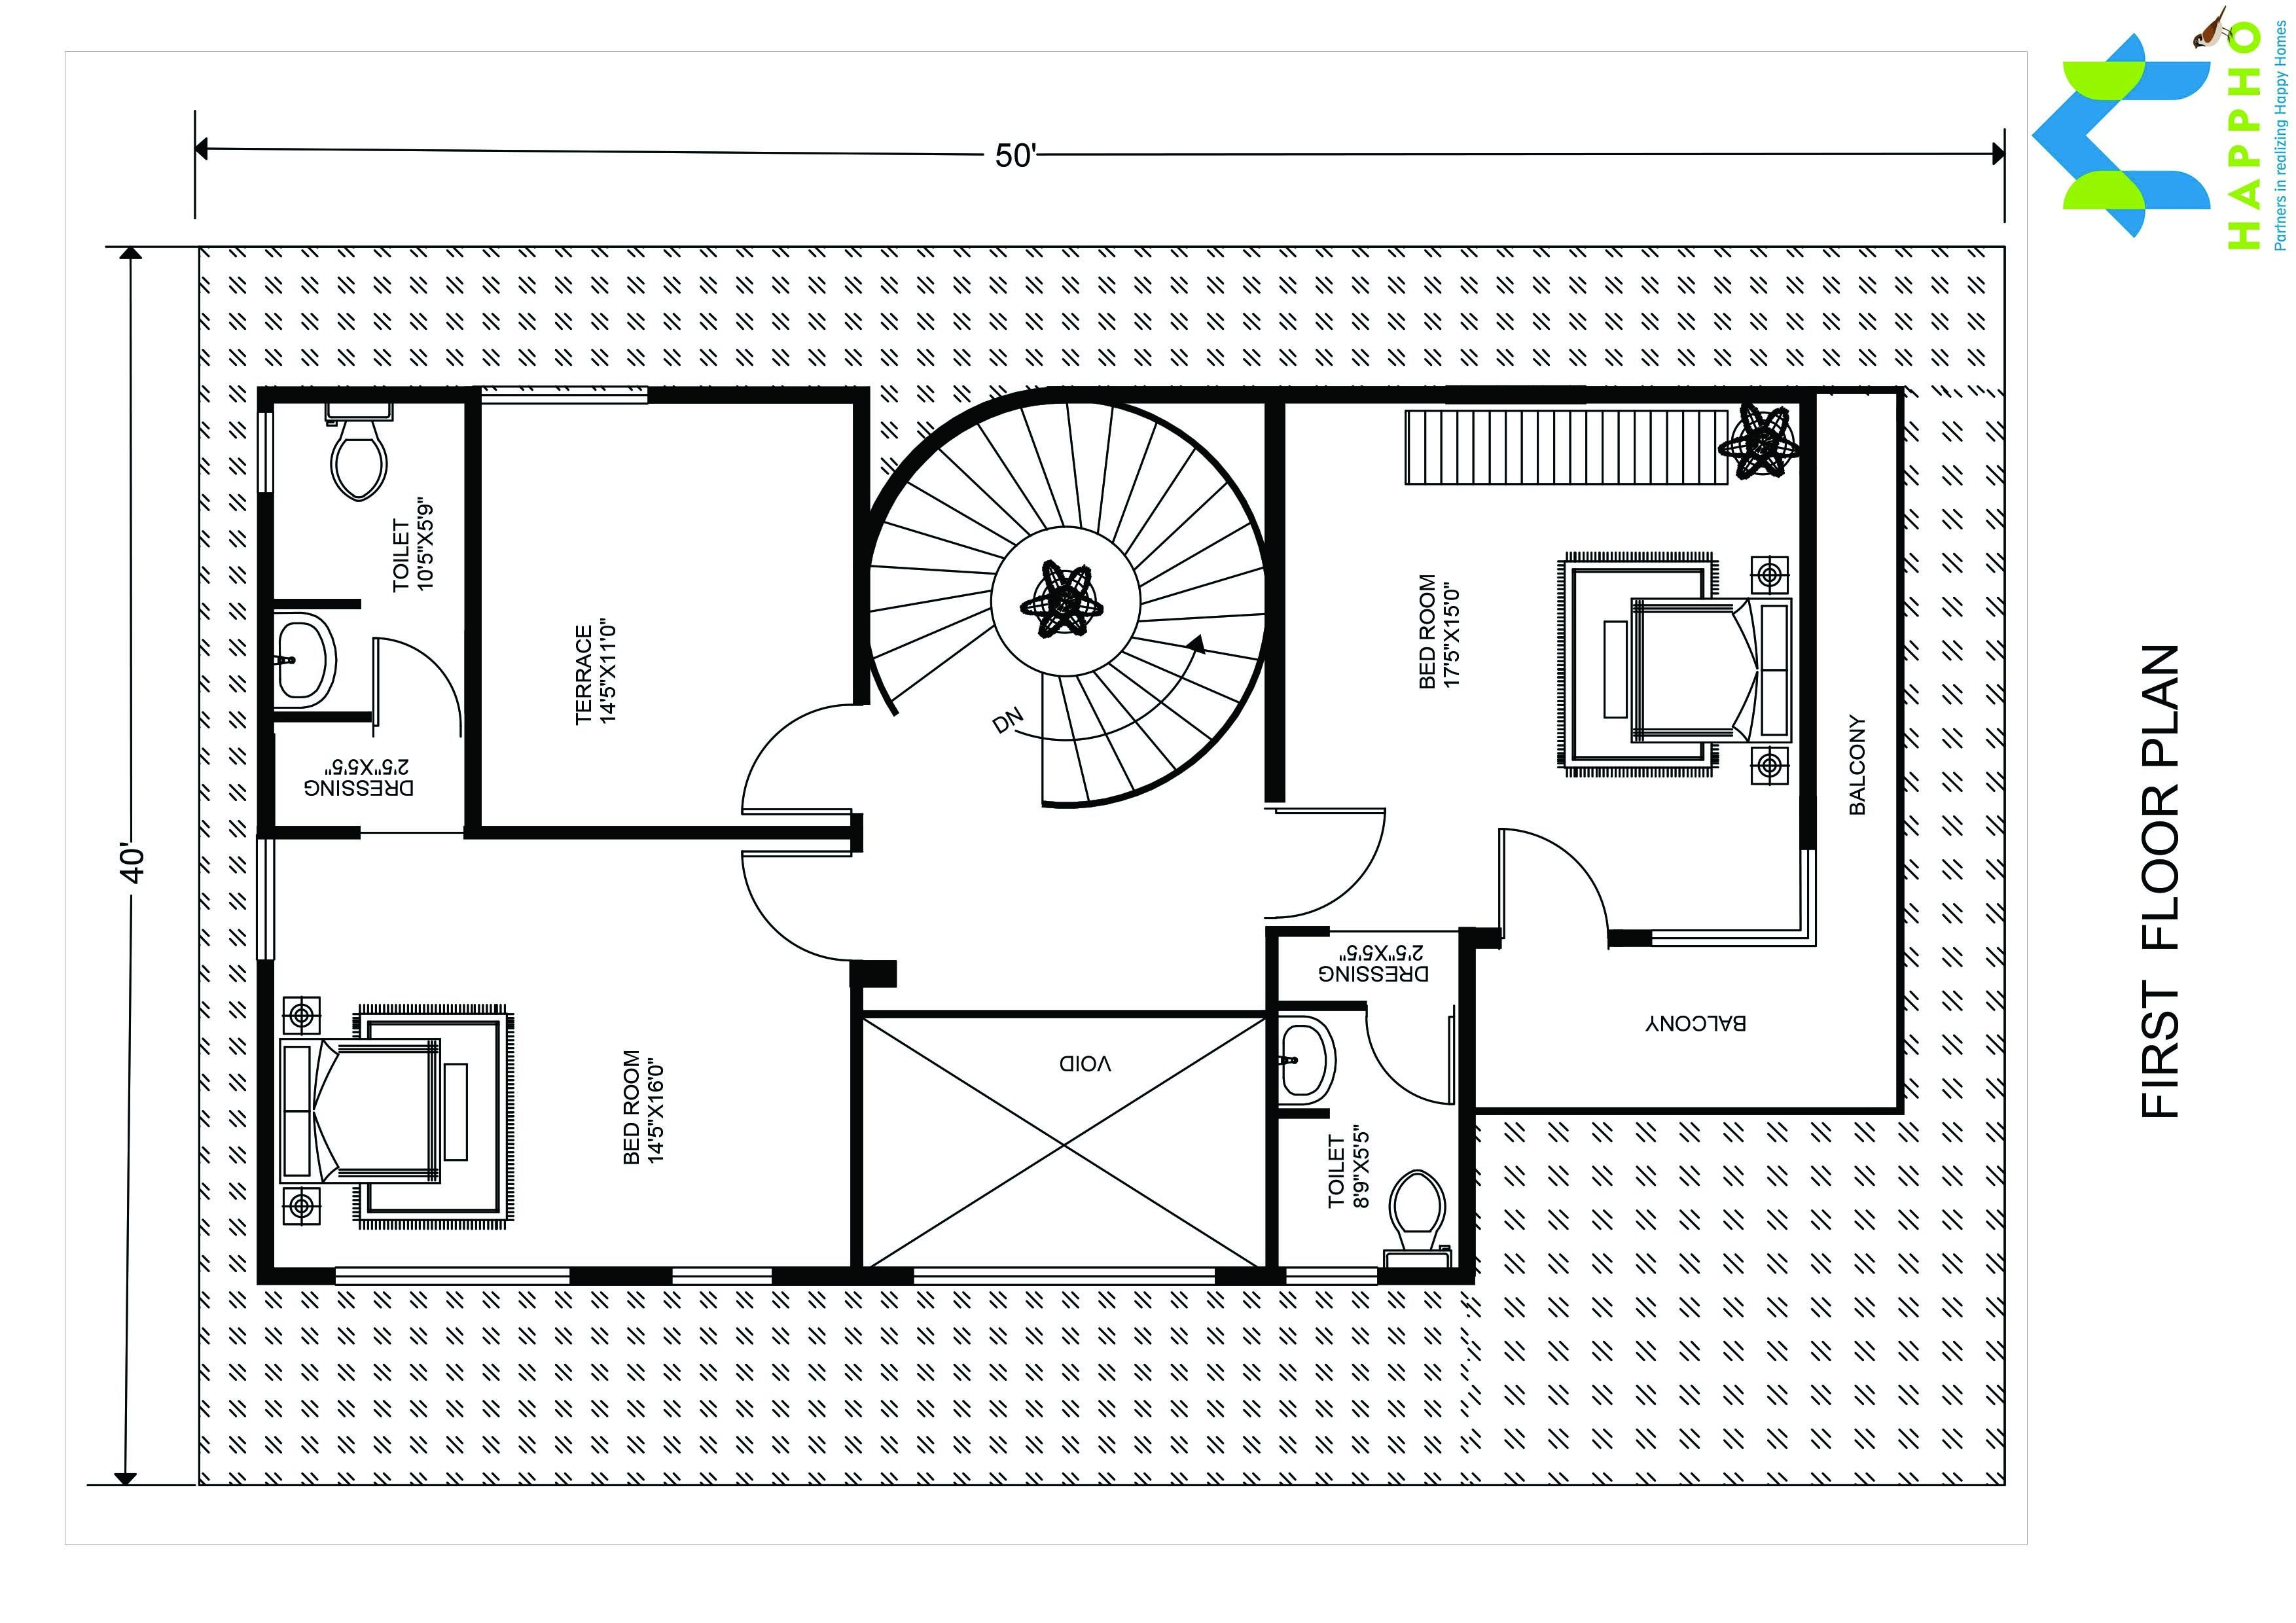 1 bhk floor plan for 22 x 35 feet plot 774 square feet for 2000 sq ft to yards